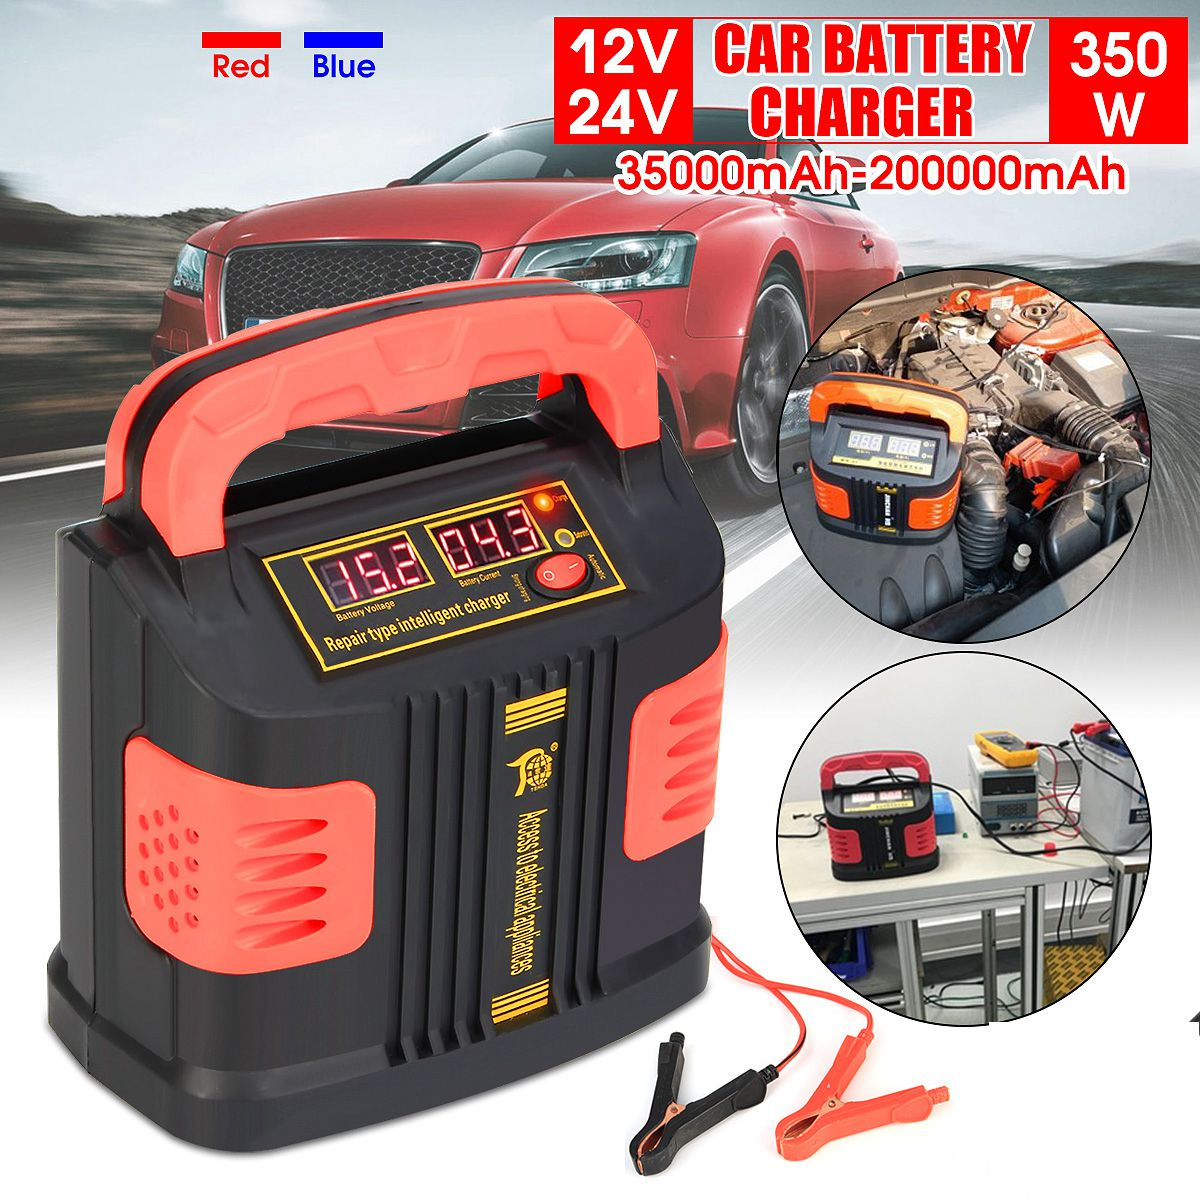 350W 12V/24V 200Ah Portable Electric Car Battery Charger Booster Intelligent Pulse Repair Type LCD Battery Fast Charge 2 Modes